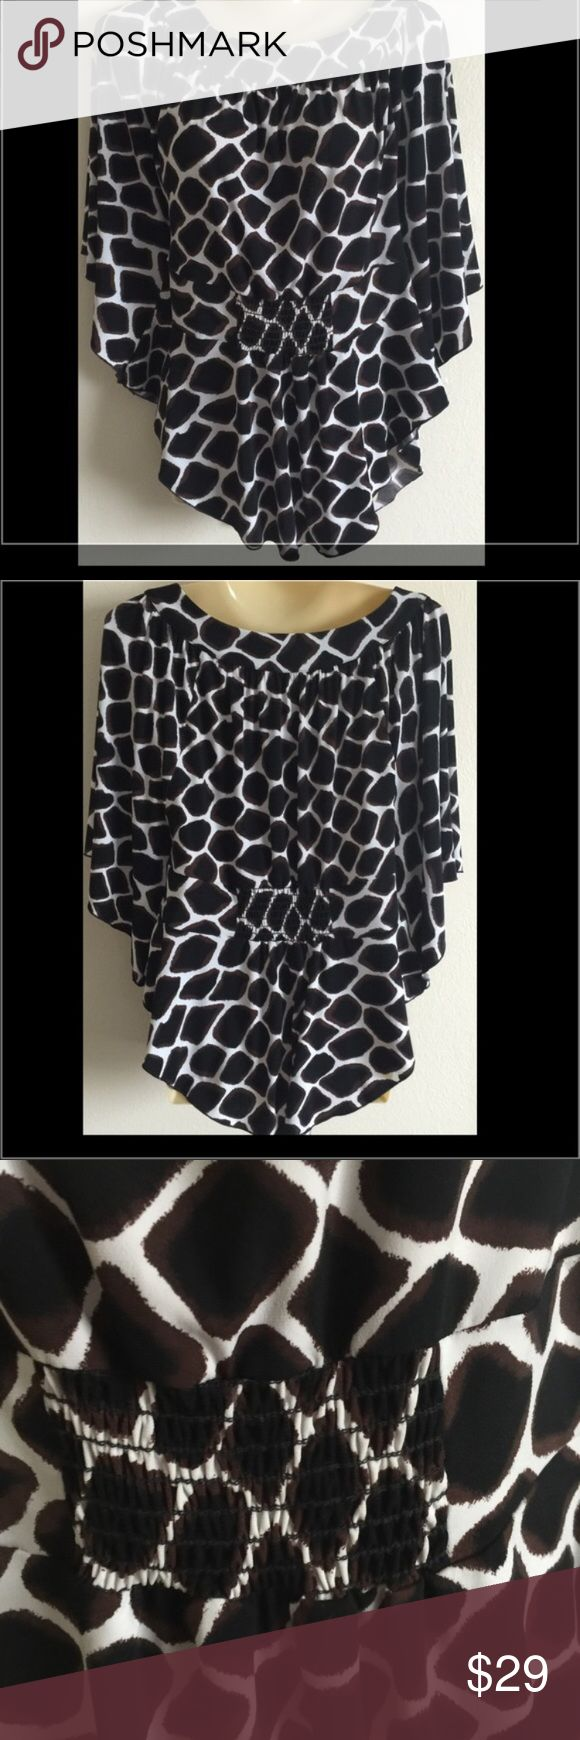 NEW White House Black Market Batwing Giraffe Top White House Black Market Batwing Dolman Giraffe Animal Print Top Shirt XS Condition: ExcellentColor: black, brown and white  Fabric: polyester spandex Hand wash     /344/ White House Black Market Tops